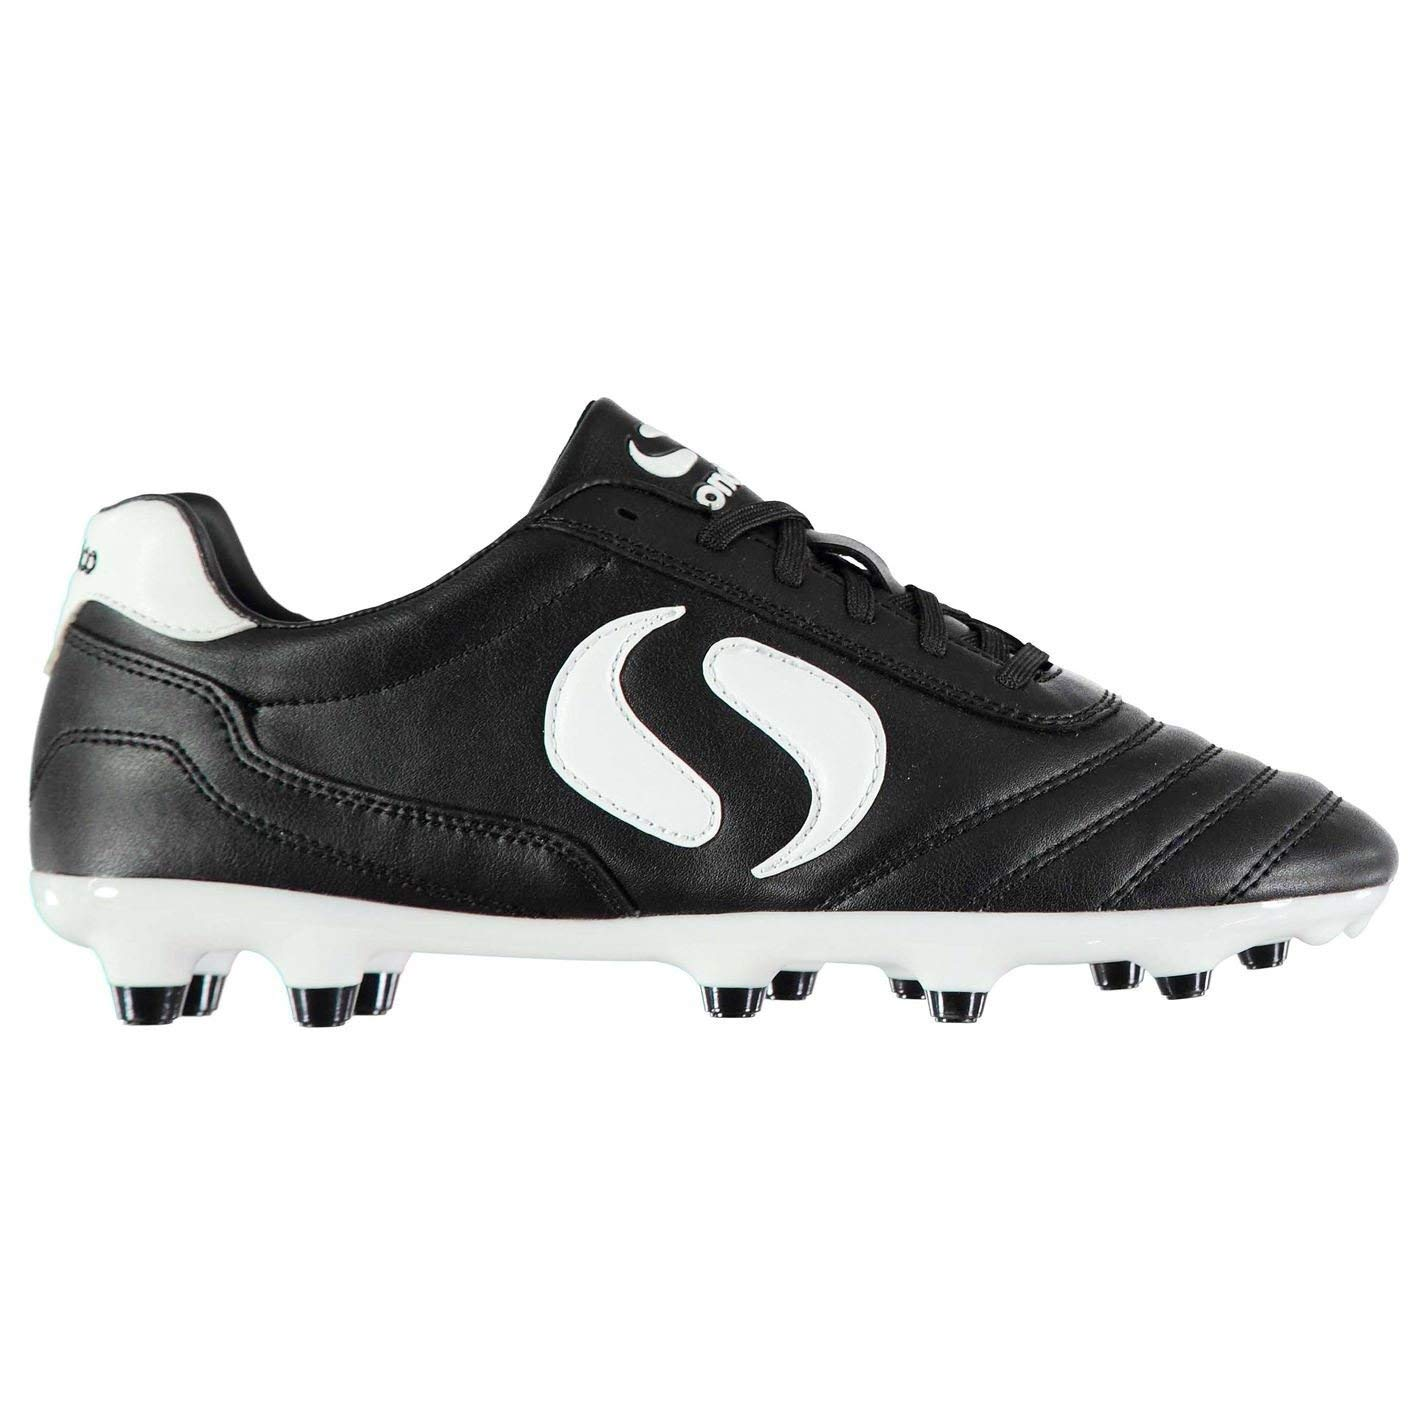 aa72a6f53 Get Quotations · Sondico Kids Strike FG Juniors Football Boots Firm Shoes